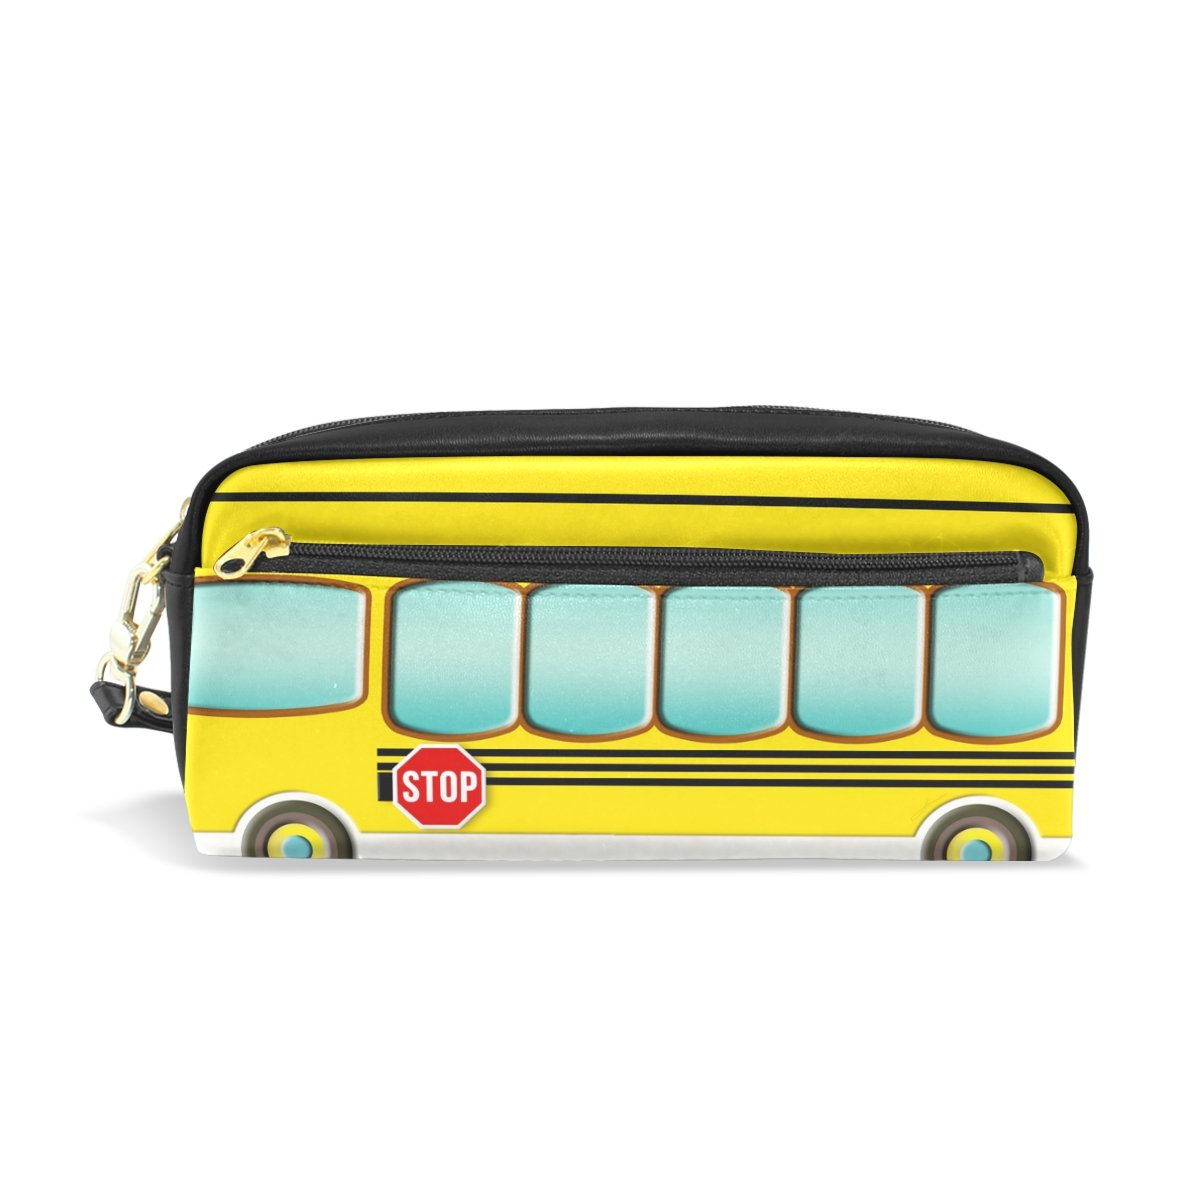 ZOEO Kids Pencil Case Yellow School Student Bus Cosmetic Makeup Bag Zipper Pen Pouch Holder for School Boys Girls by ZOEO